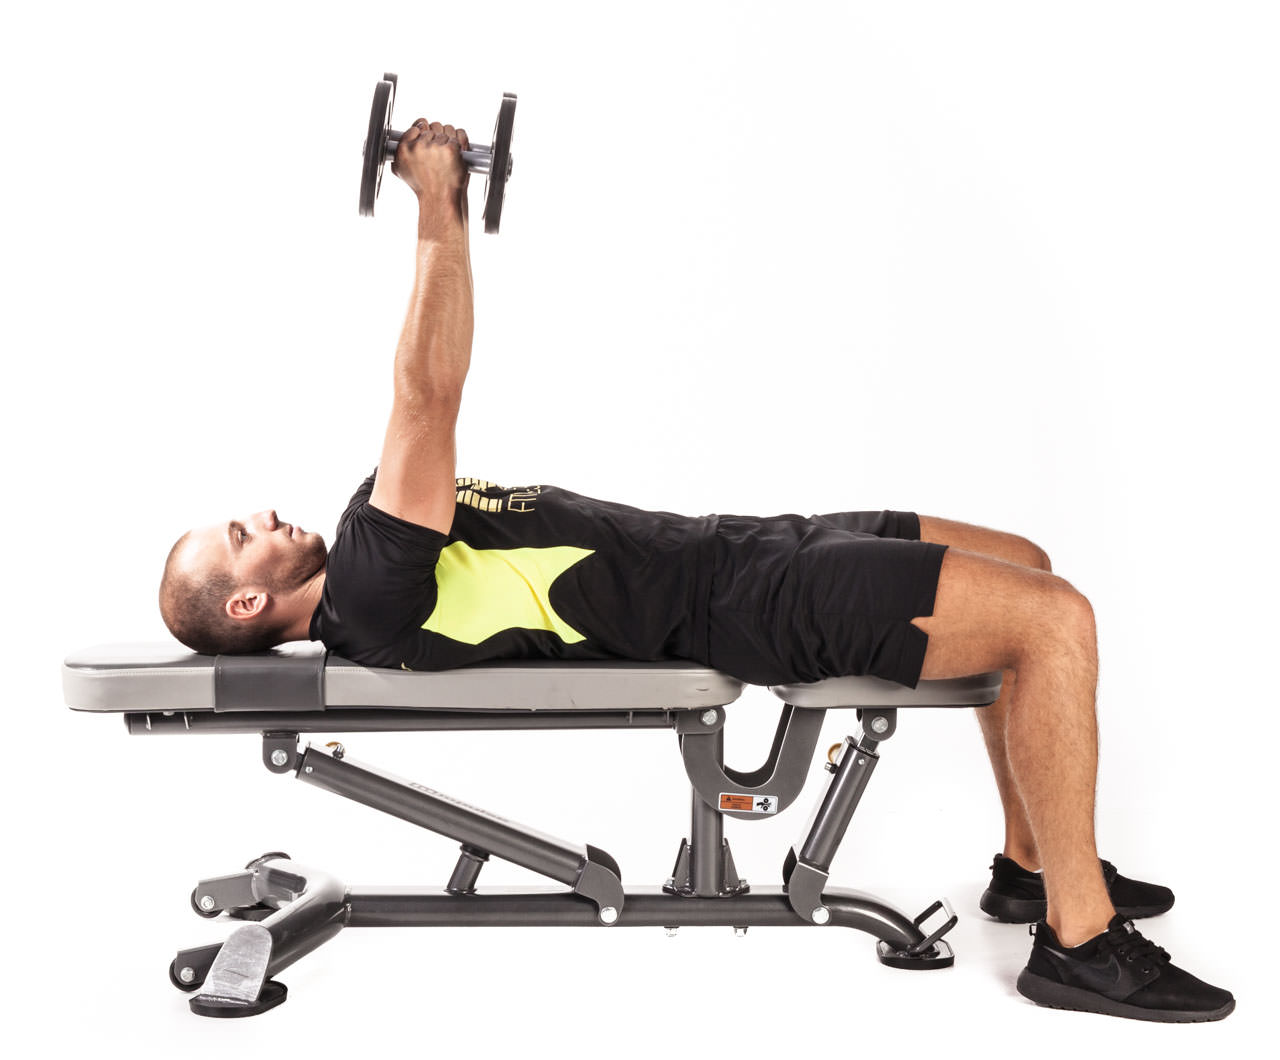 Flat Bench Triceps Extension frame #1